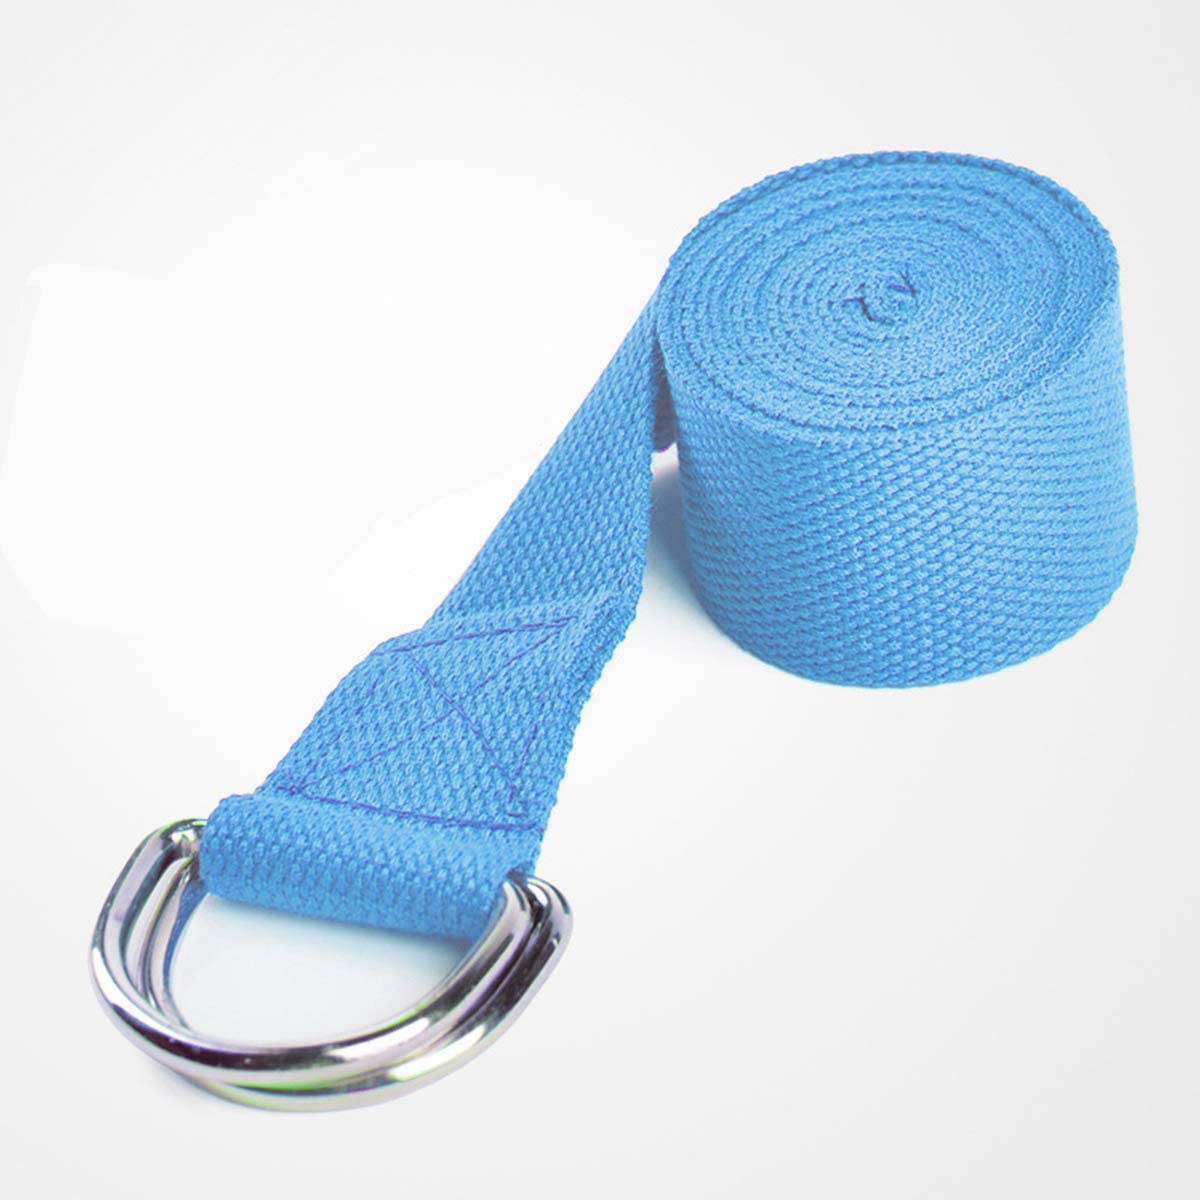 5Pcs Yoga Set for Beginners Equipment Exercise Ball Yoga Blocks and Straps Resistance Loop Band